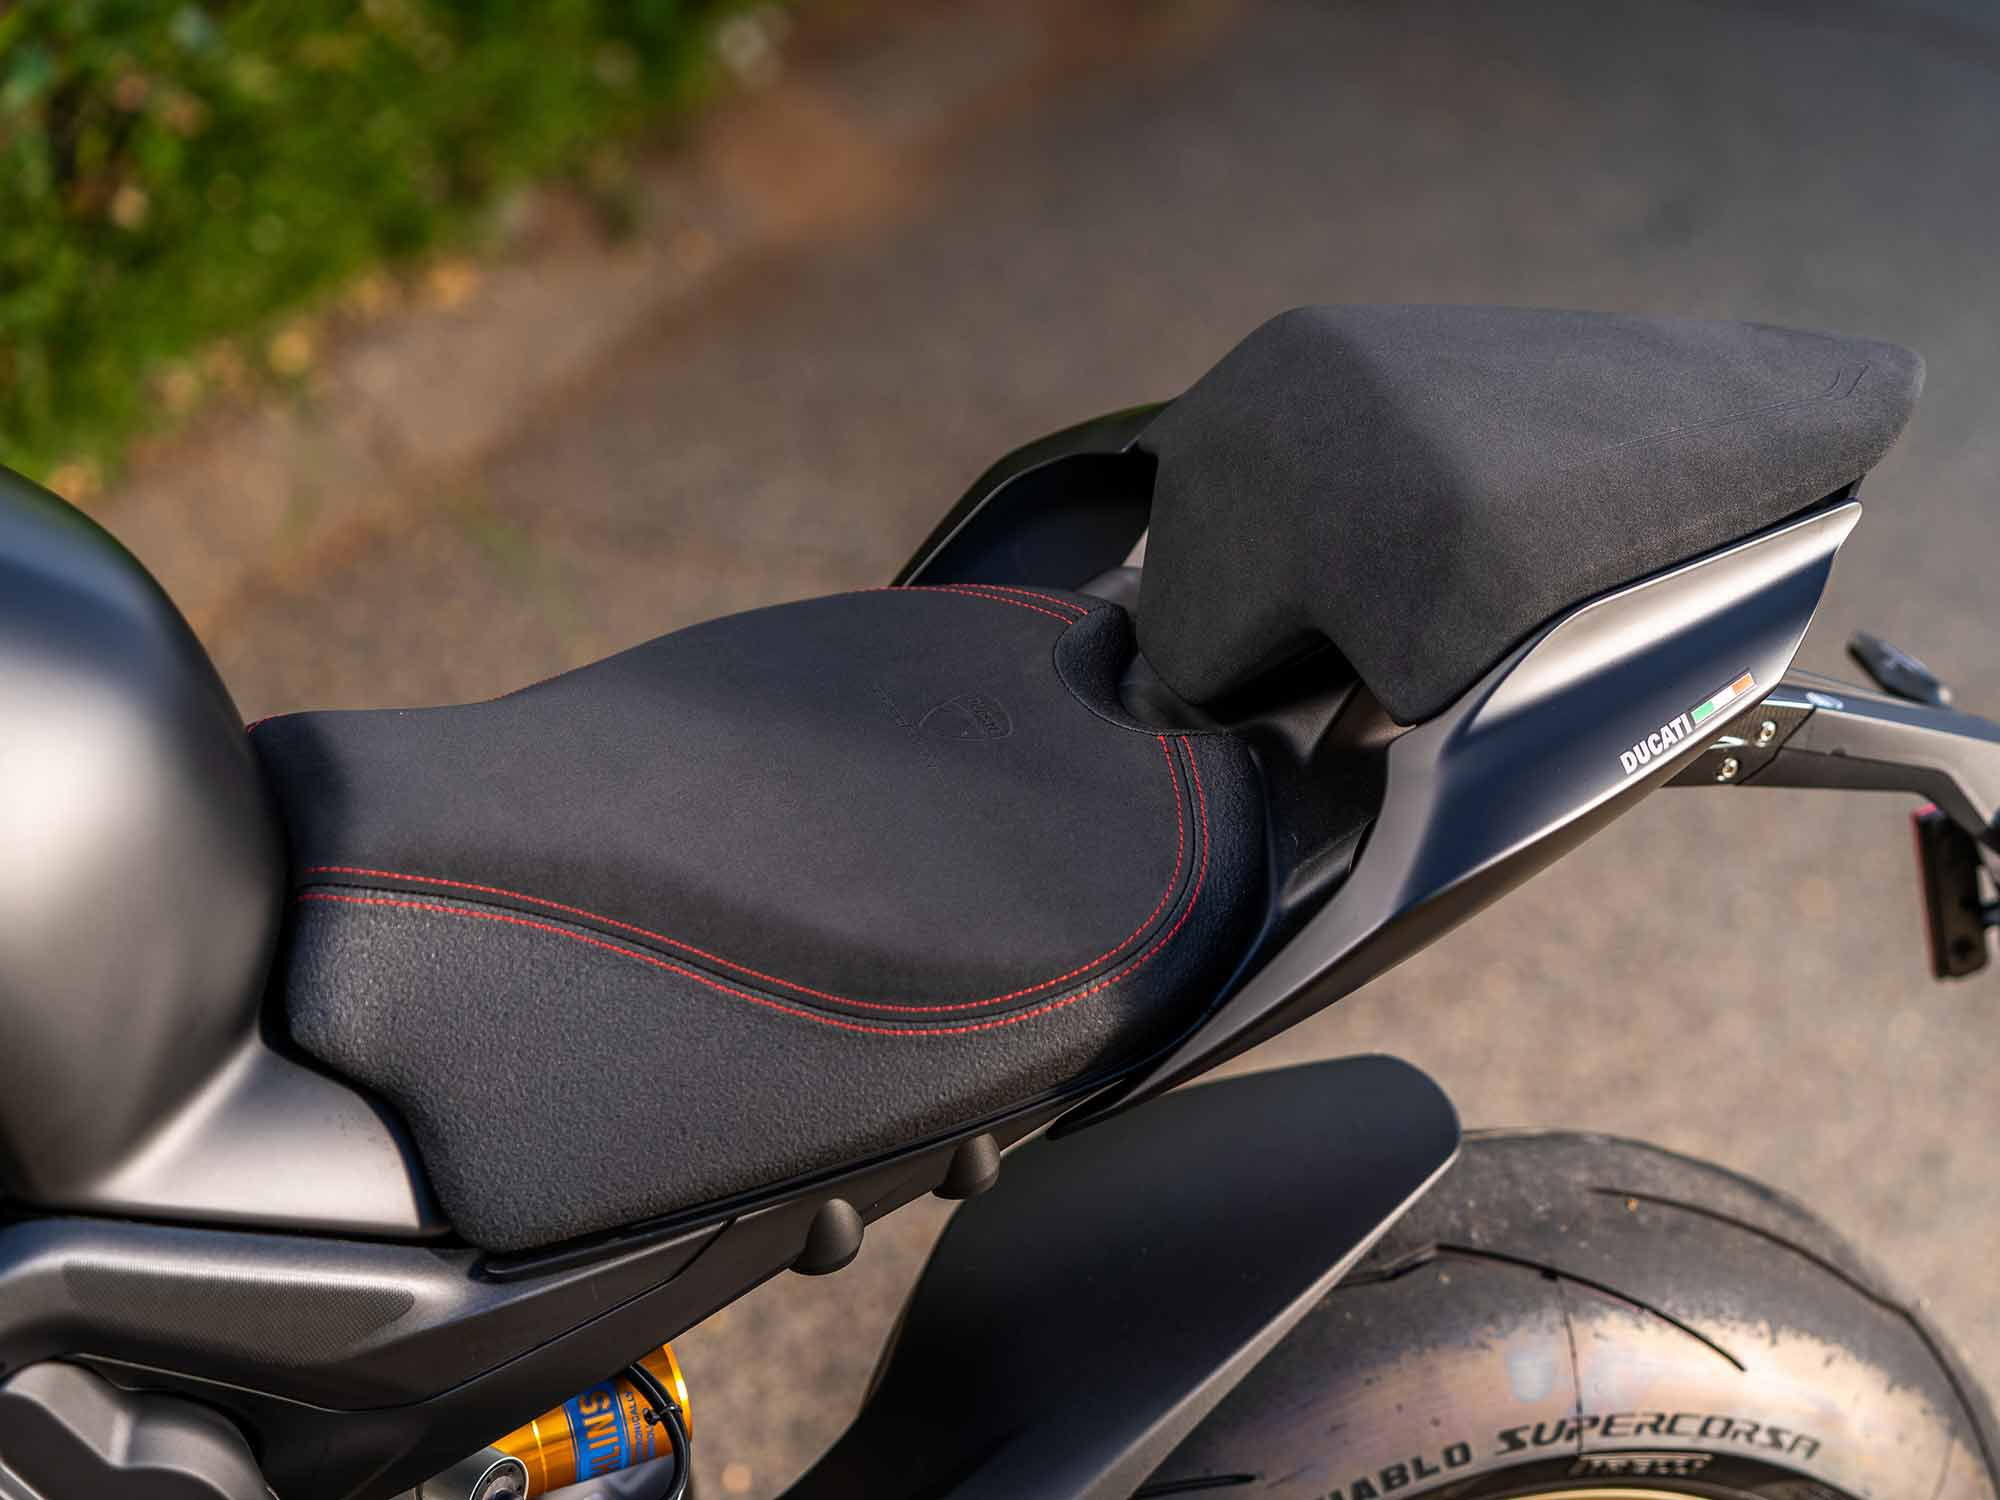 The accessory racing seat offers a surprising level of comfort. However, it's a tad too grippy for our taste. Short riders beware: It raises the seat height to just over 34 inches.